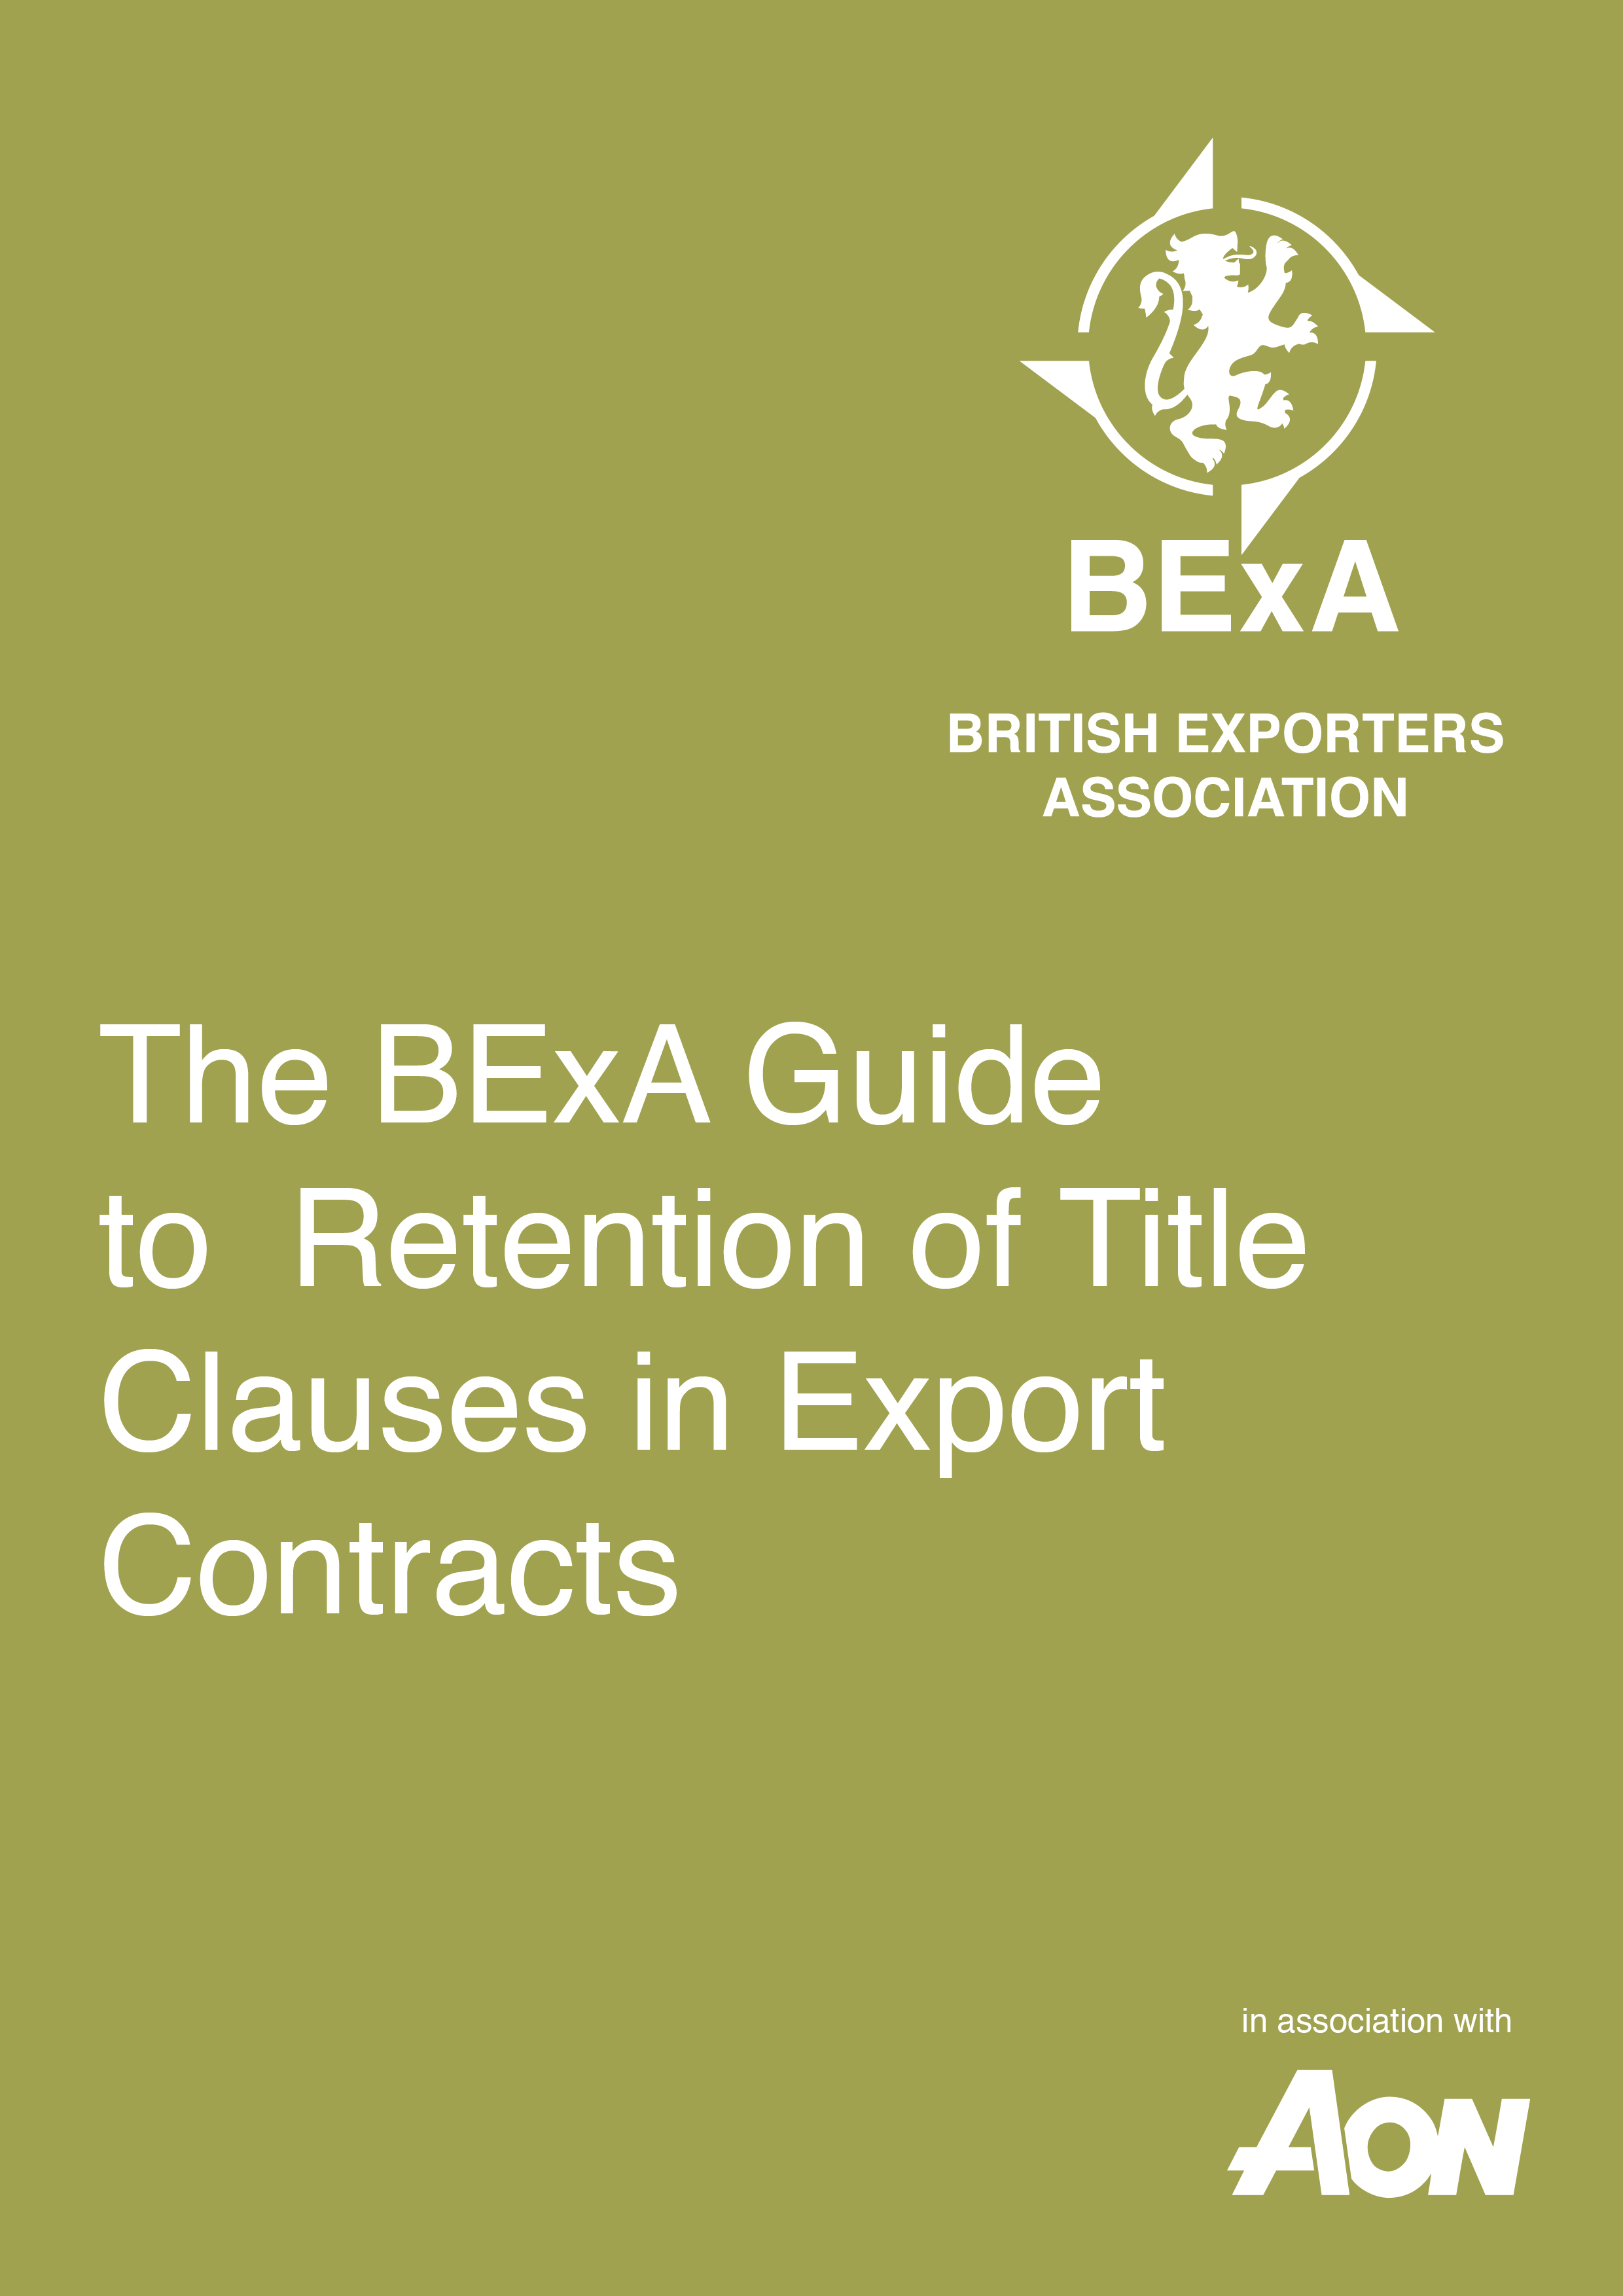 BExA Guide to the Retention of Title Clauses in Export Contracts front cover